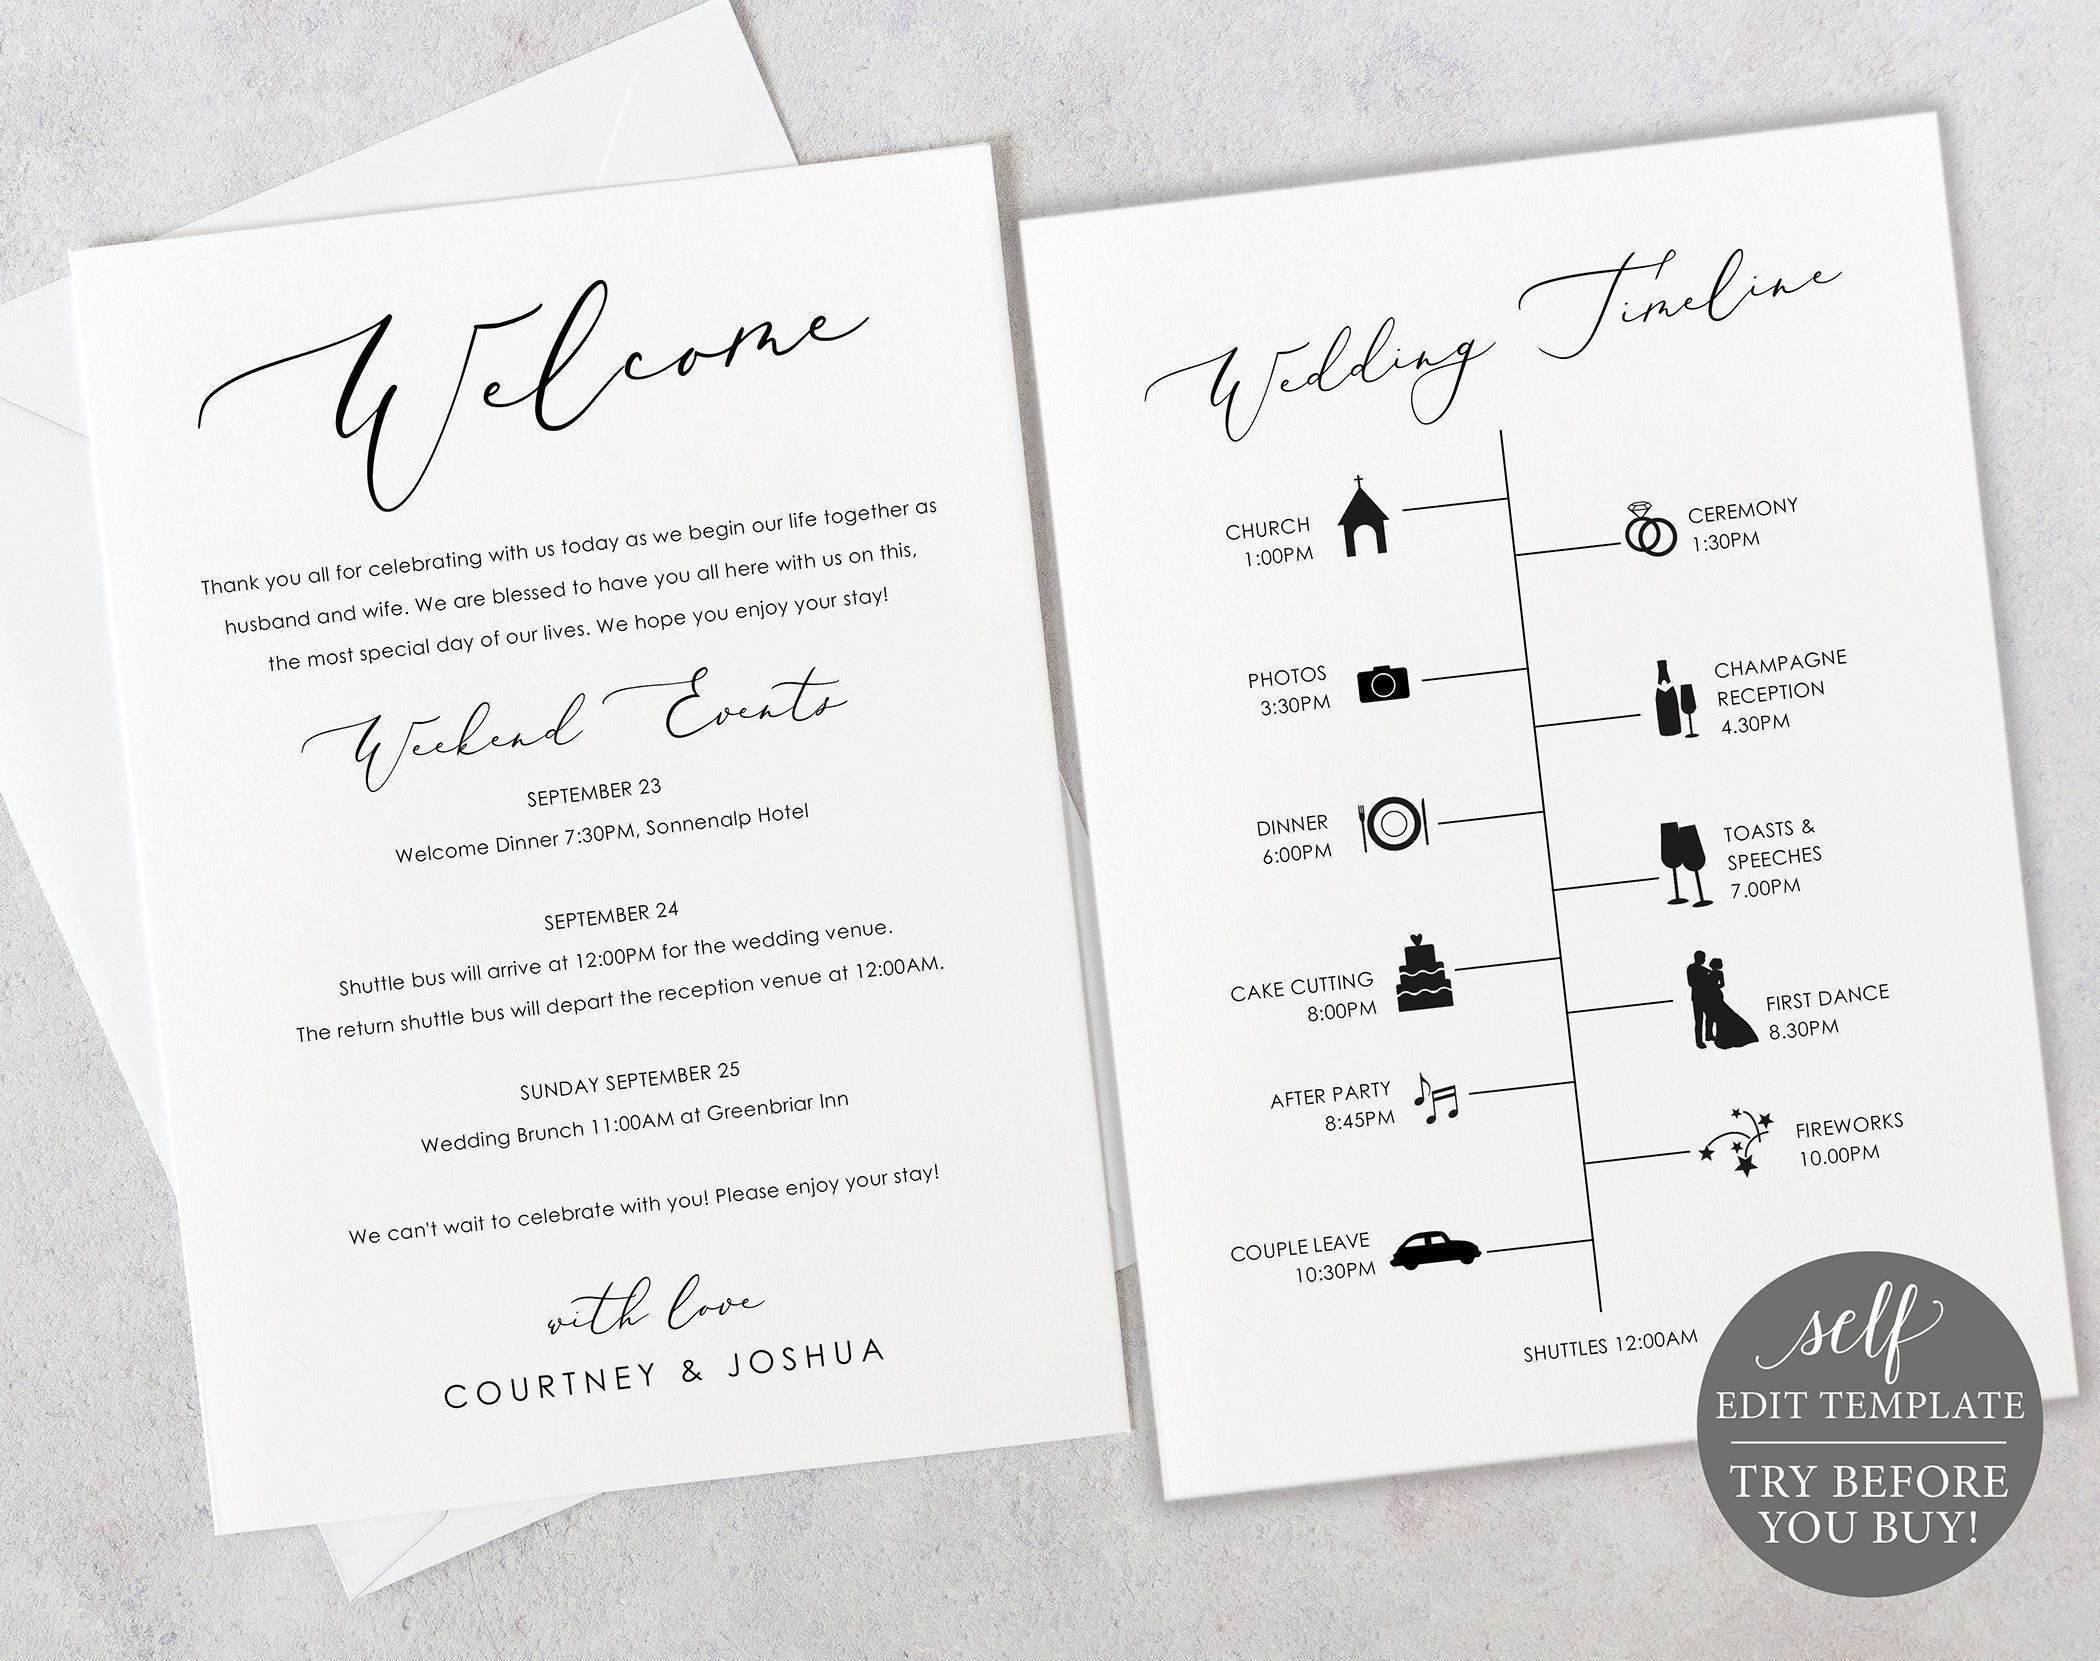 Wedding Itinerary Card Template Elegant Script Editable Etsy Wedding Itinerary Wedding Timeline Welcome Card